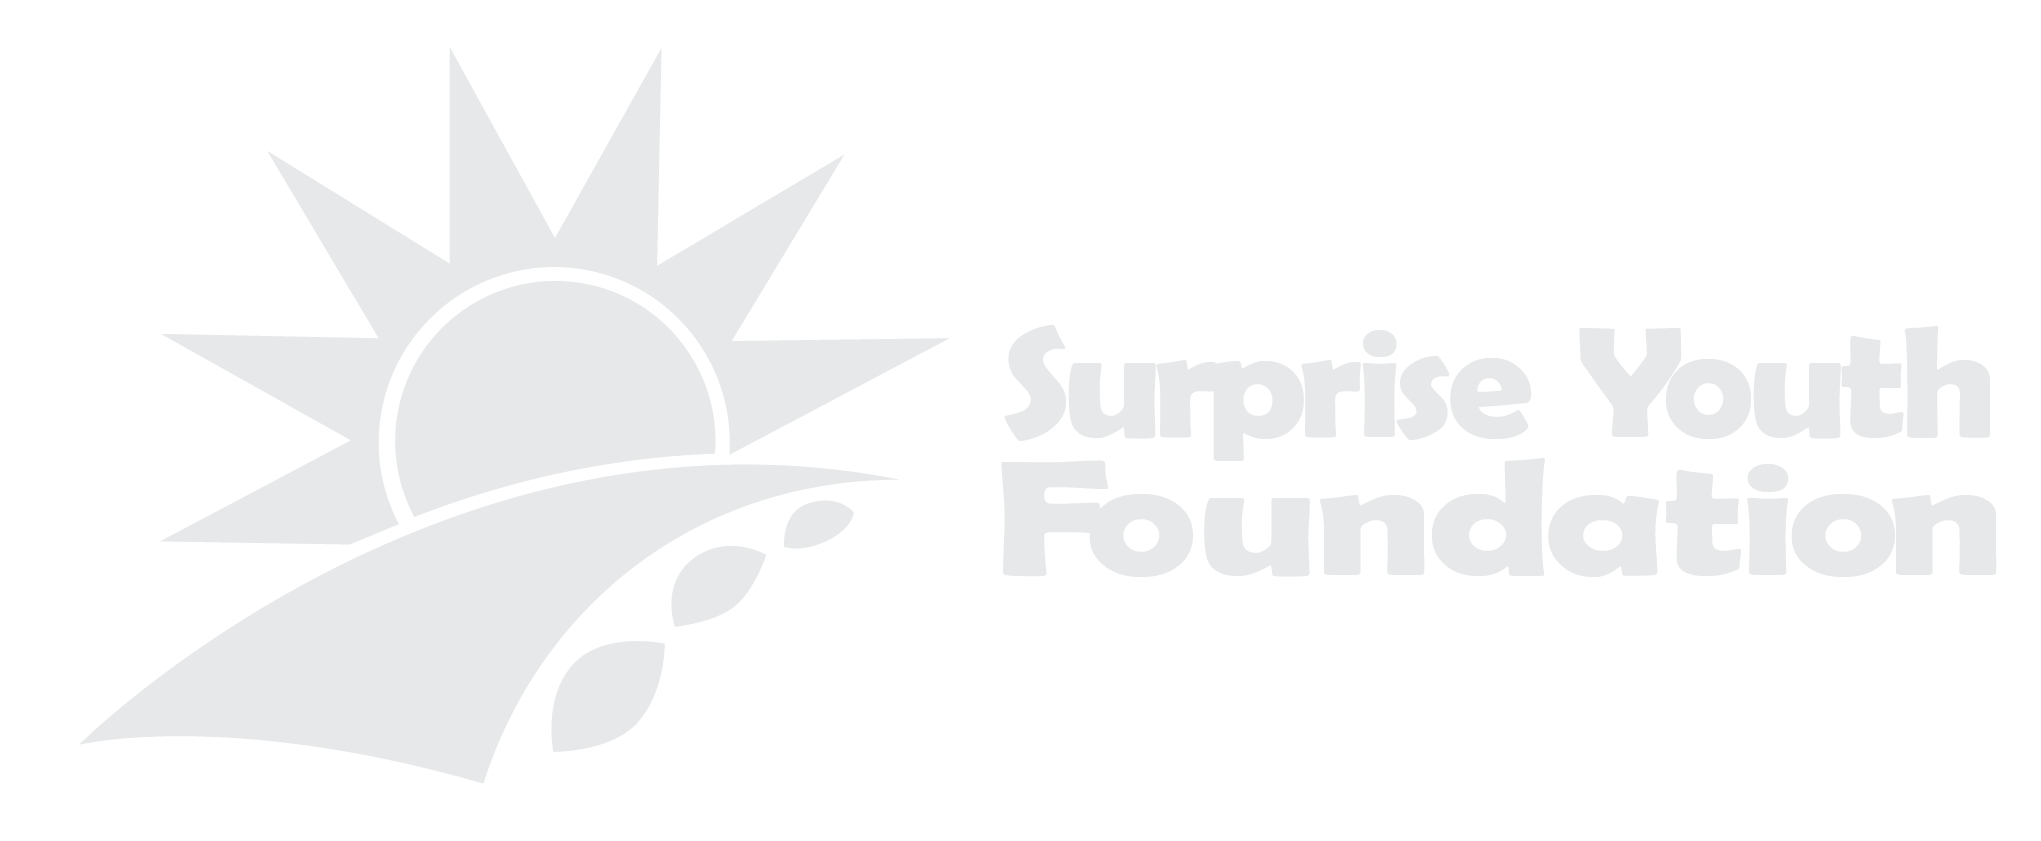 Surprise Youth Foundation